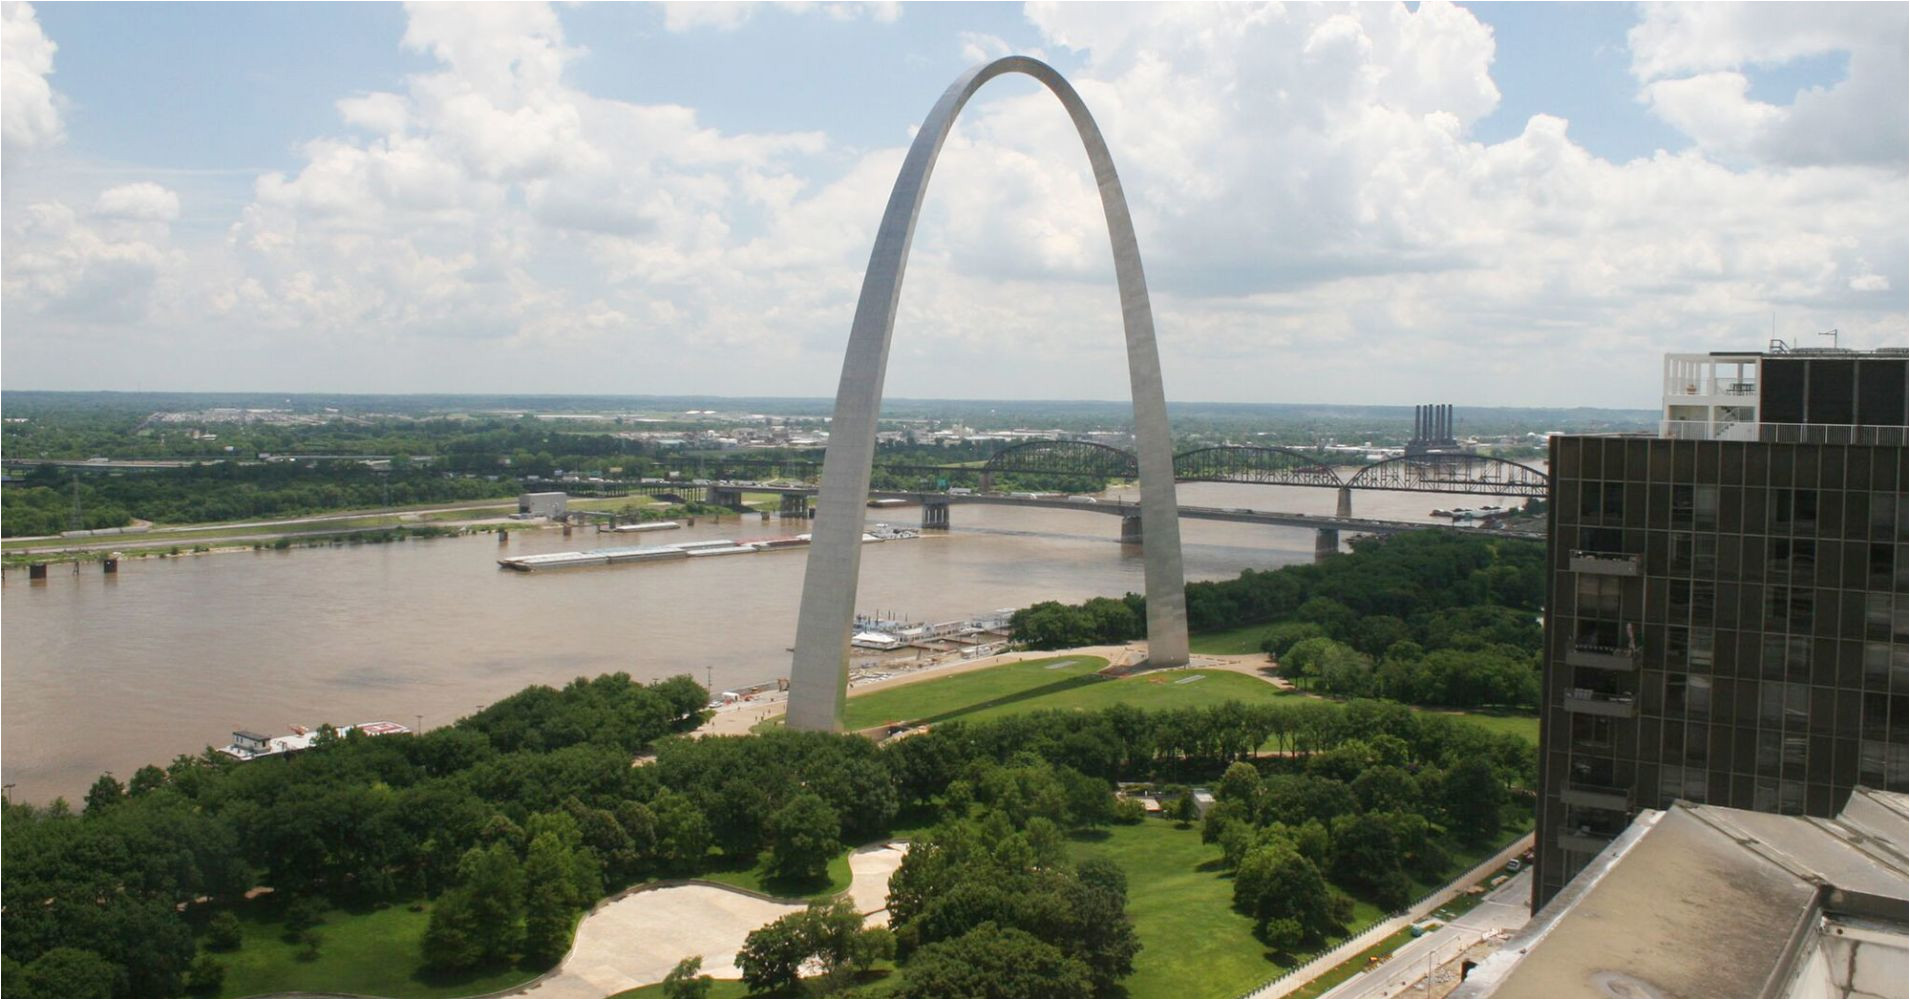 105047080 daytime view of the iconic gateway arch in st louis courtesy of gateway arch park foundation preview 1910x1000 jpg